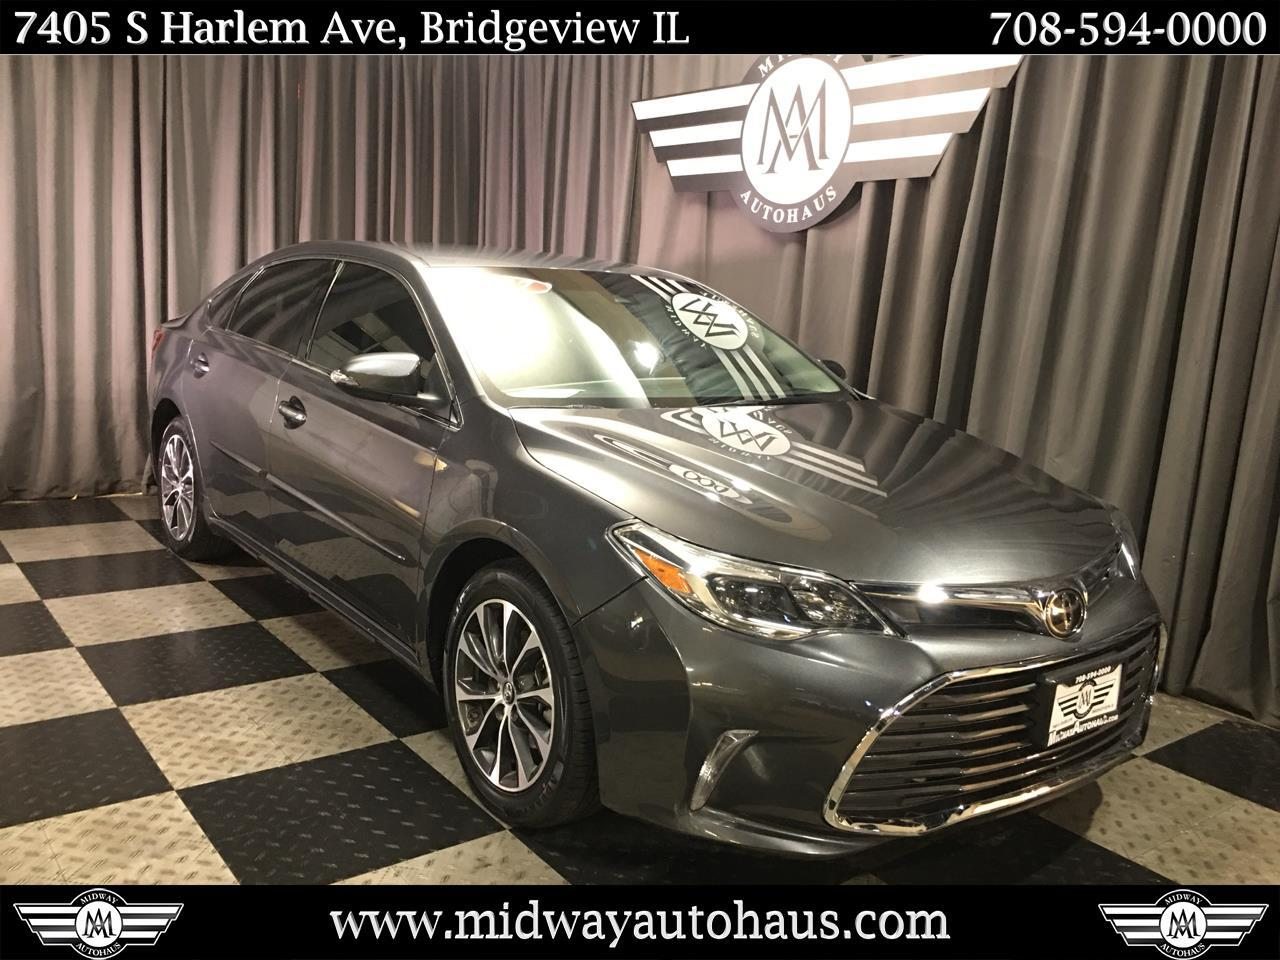 Used Toyota Avalon Bridgeview Il